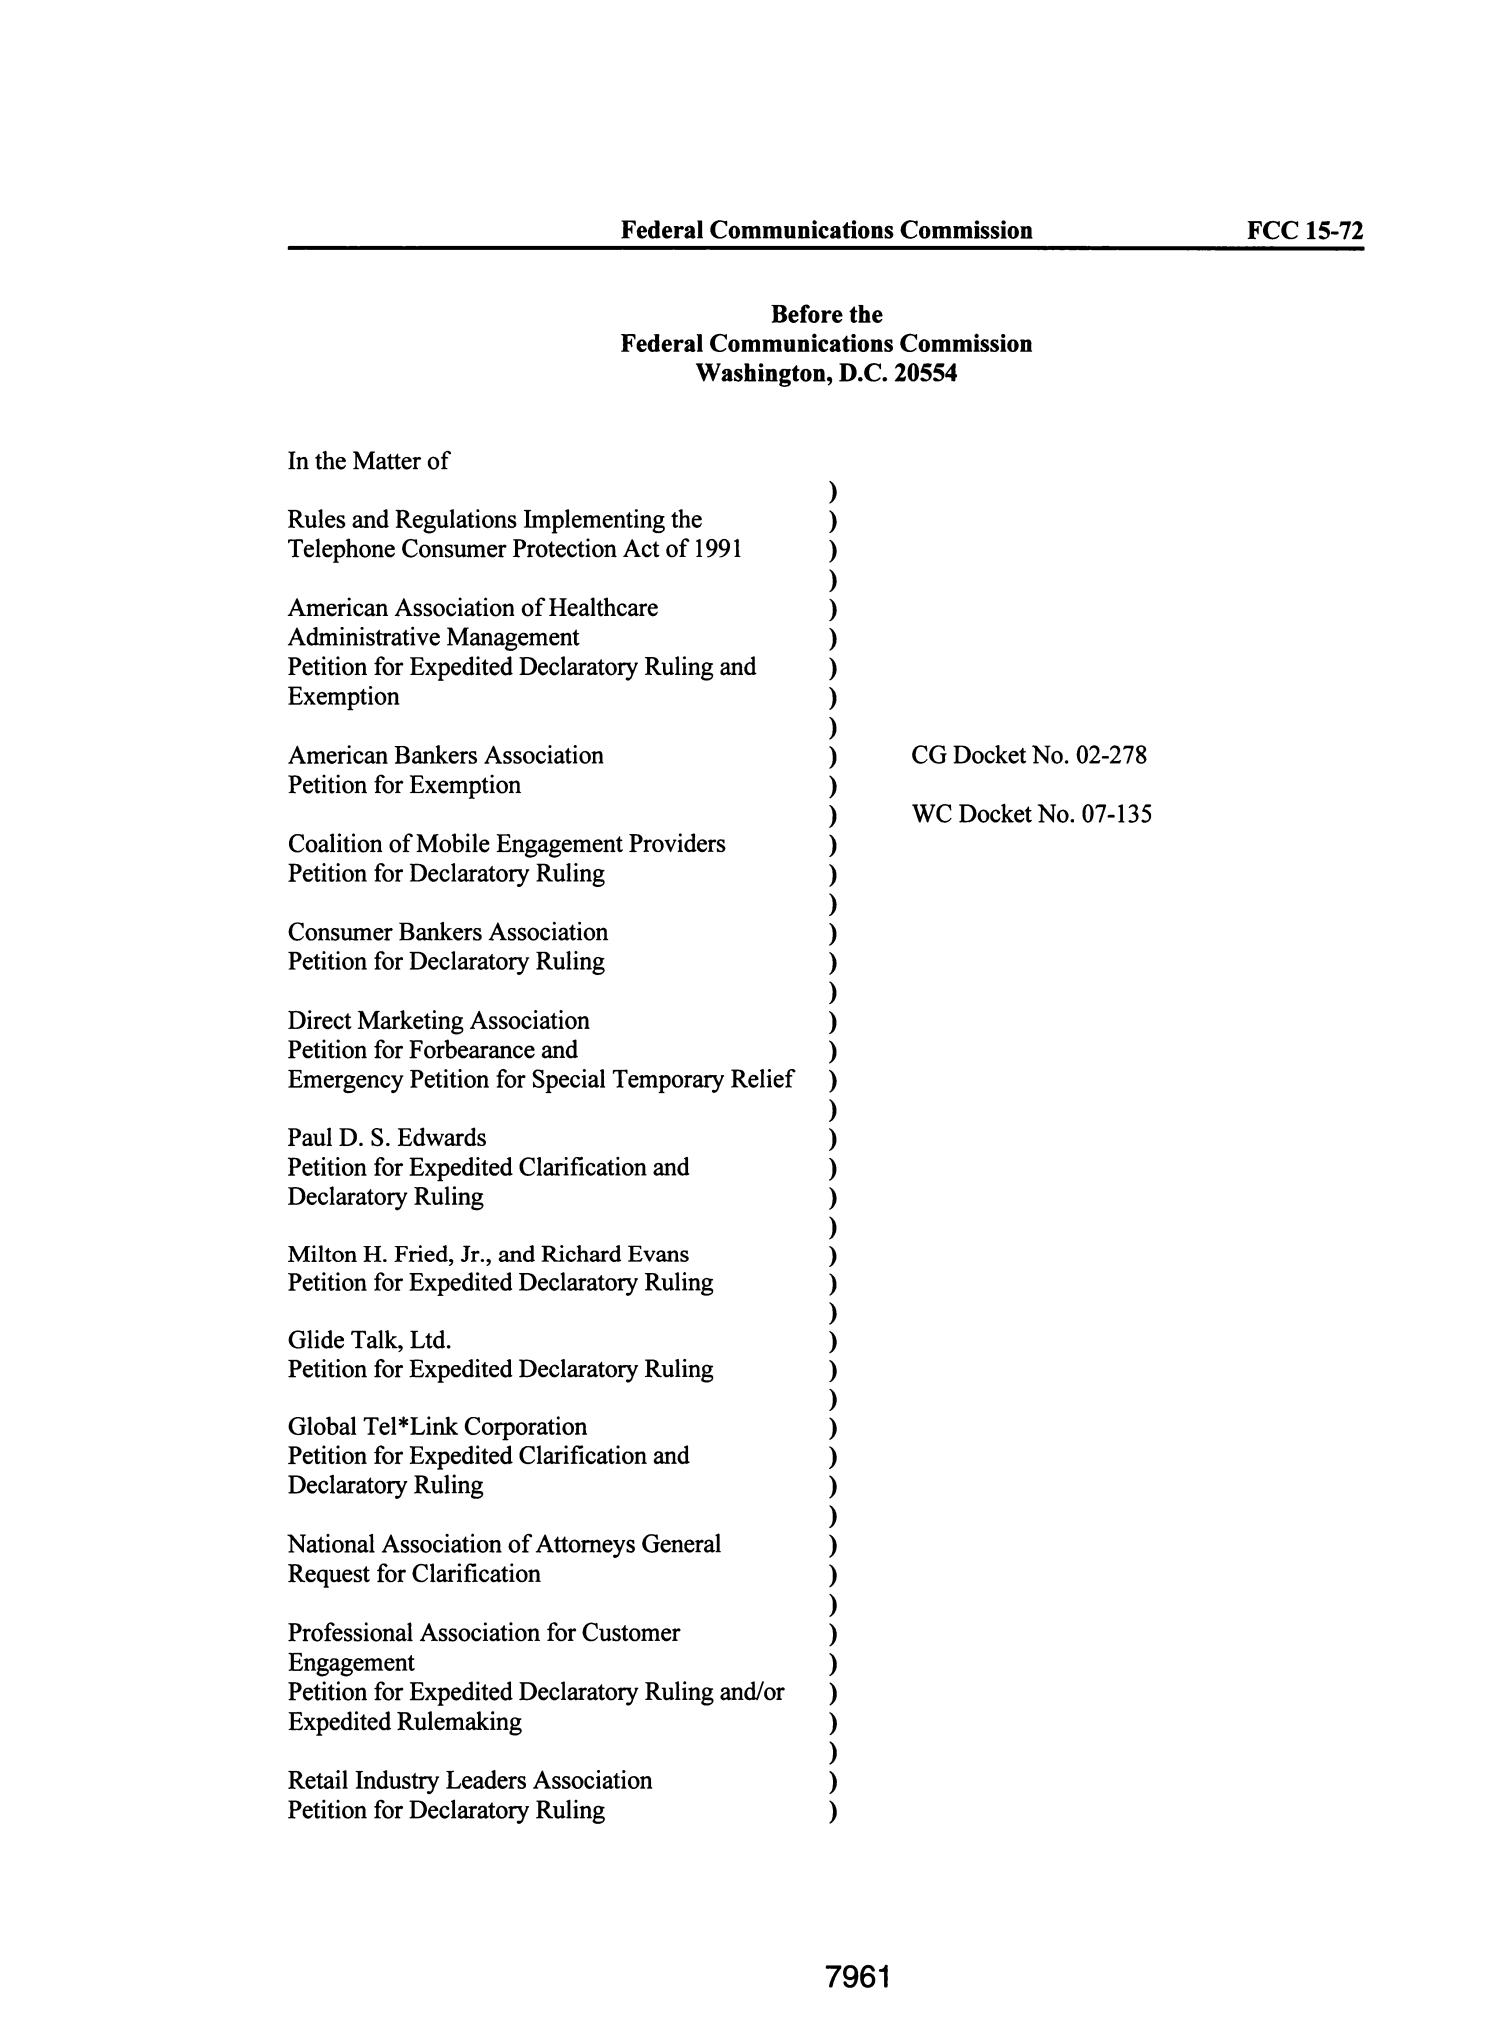 FCC Record, Volume 30, No. 10, Pages 7818 to 8098, Supplement (June - July 2015)                                                                                                      7961